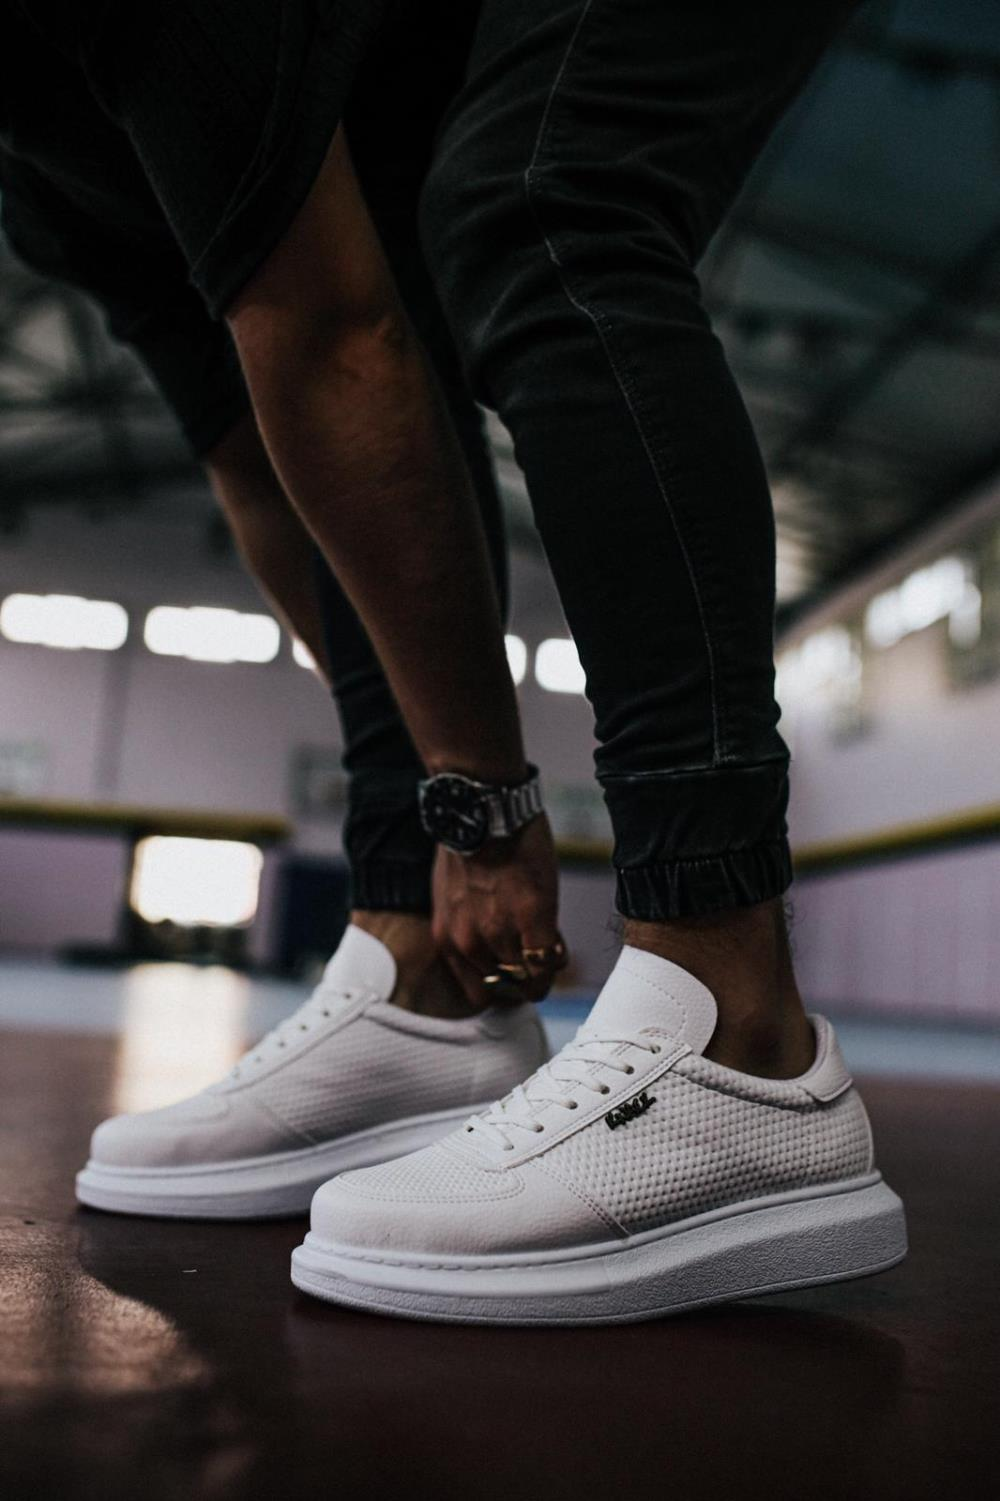 Knack Men's Casual Shoes White Color Summer High Sole Non Leather Flashy Quality Hiking Sneakers mens shoes casual men sneakers barefoot shoes casual shoes man shoes luxury shoes safety shoes anime shoes sneaker 042